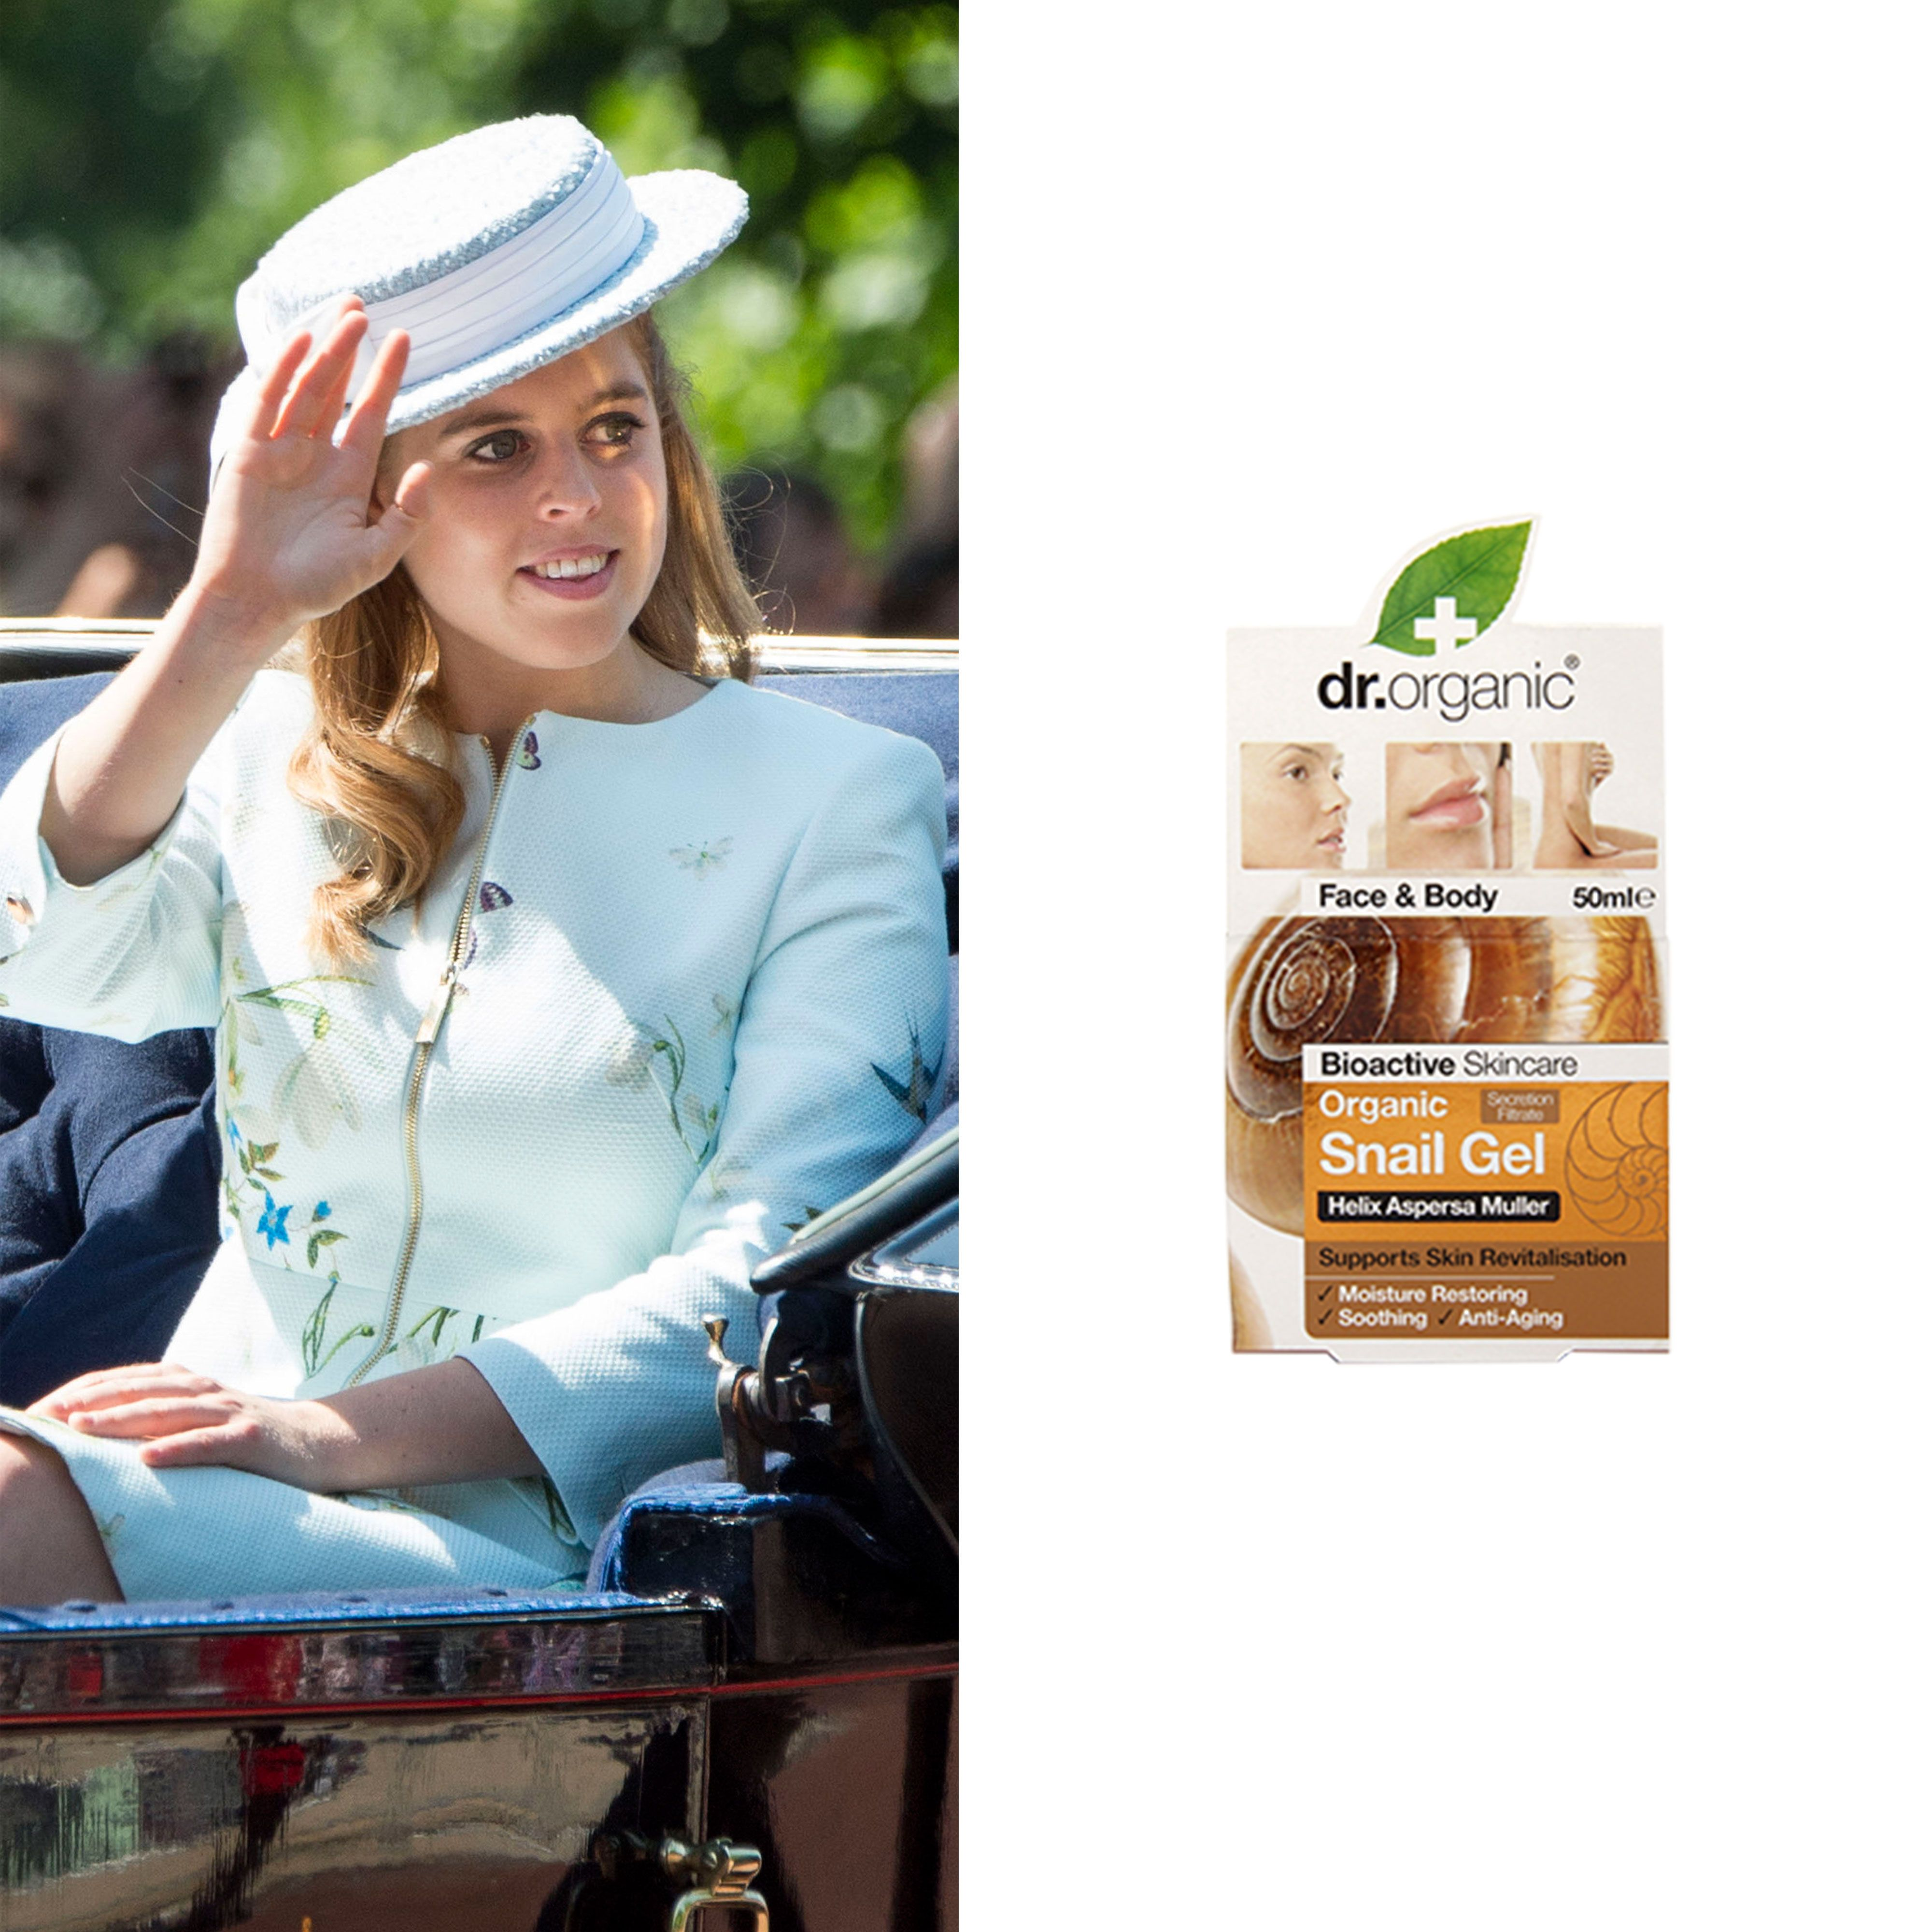 "<p>Princess Beatrice <a href=""http://www.dailymail.co.uk/femail/article-2851606/Louise-Redknapp-40-showcases-eternal-youth-new-beauty-campaign-reveals-sends-organic-make-range-Princess-Beatrice.html"" target=""_blank"" data-tracking-id=""recirc-text-link"">uses Dr. Organic Snail Gel</a> for her skin.&nbsp&#x3B;I'm more than a tad skeptical of putting anything called ""snail gel"" on my face but, hey, if it's good enough for a princess...&nbsp&#x3B;($26.25&#x3B;&nbsp&#x3B;<a href=""https://www.amazon.com/Organic-Doctor-Moisturizing-Restoring-Skincare/dp/B00L0L3L5O"" target=""_blank"" data-tracking-id=""recirc-text-link"">amazon.com</a>)</p><p><a href=""https://www.amazon.com/Organic-Doctor-Moisturizing-Restoring-Skincare/dp/B00L0L3L5O?tag=redbook_auto-append-20"" target=""_blank"" class=""slide-buy--button"" data-tracking-id=""recirc-text-link""><strong data-redactor-tag=""strong"" data-verified=""redactor"">BUY NOW</strong></a></p><p><strong data-redactor-tag=""strong"" data-verified=""redactor"">RELATED: </strong><a href=""http://www.redbookmag.com/fashion/style/g608/best-drugstore-bb-cream/"" target=""_blank"" data-tracking-id=""recirc-text-link""><strong data-redactor-tag=""strong"" data-verified=""redactor"">The Best BB and CC Creams for Your Buck</strong></a> </p>"